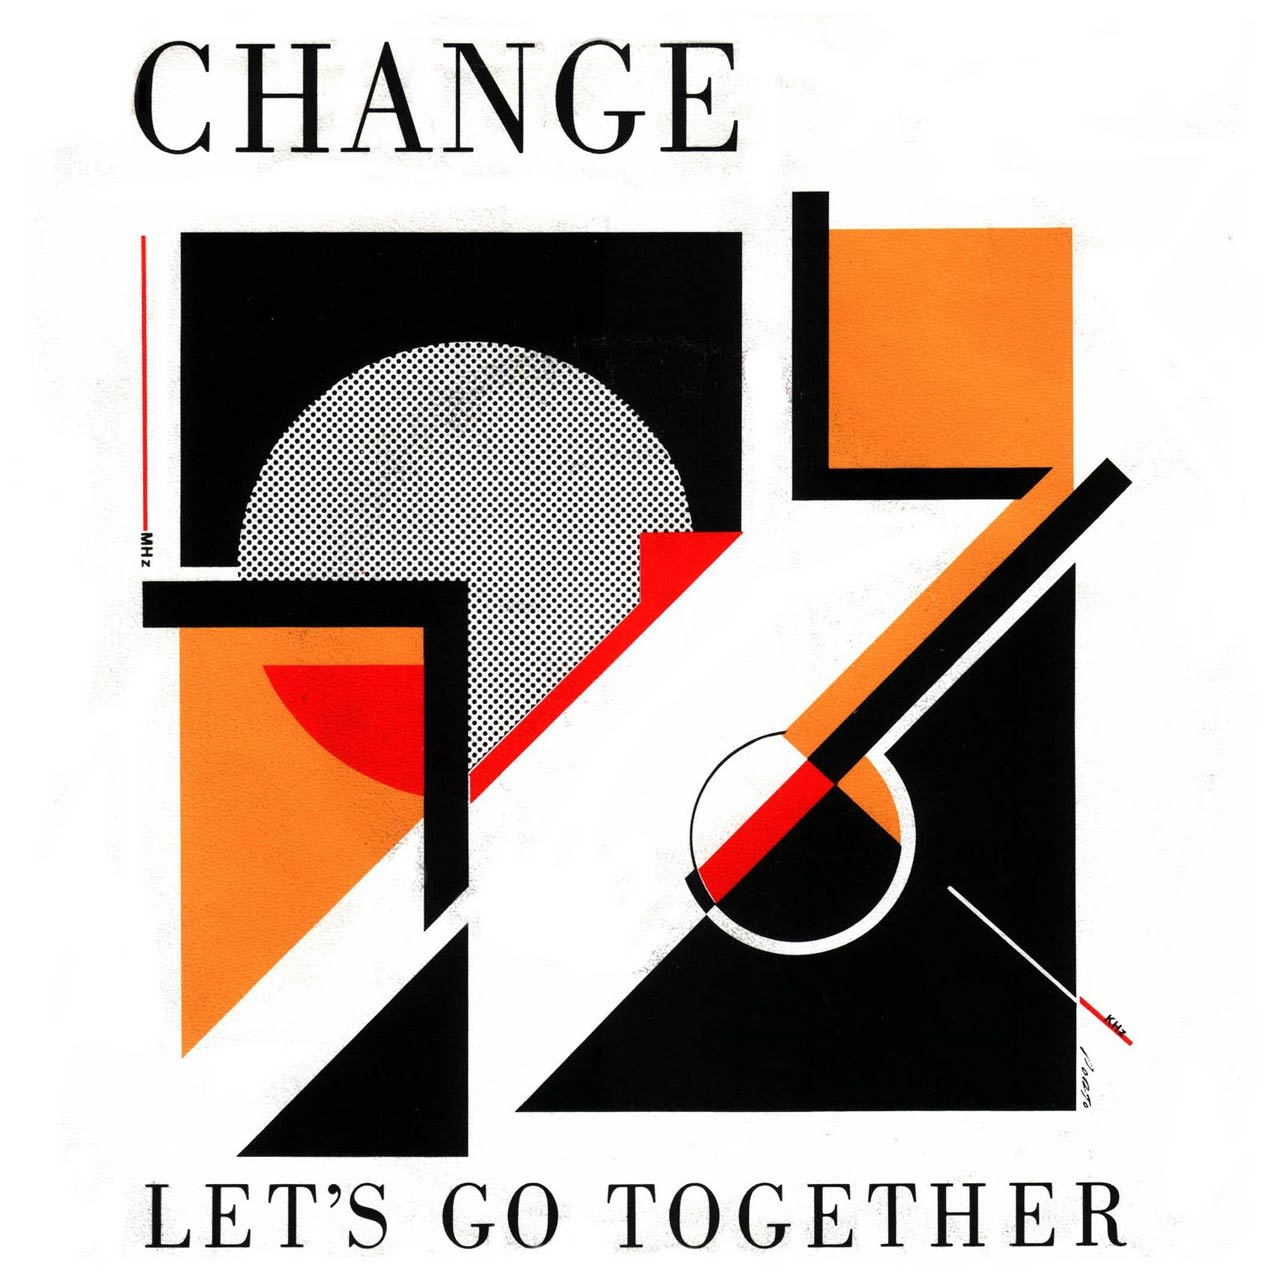 The graphic art of Greg Porto - Change lets go together